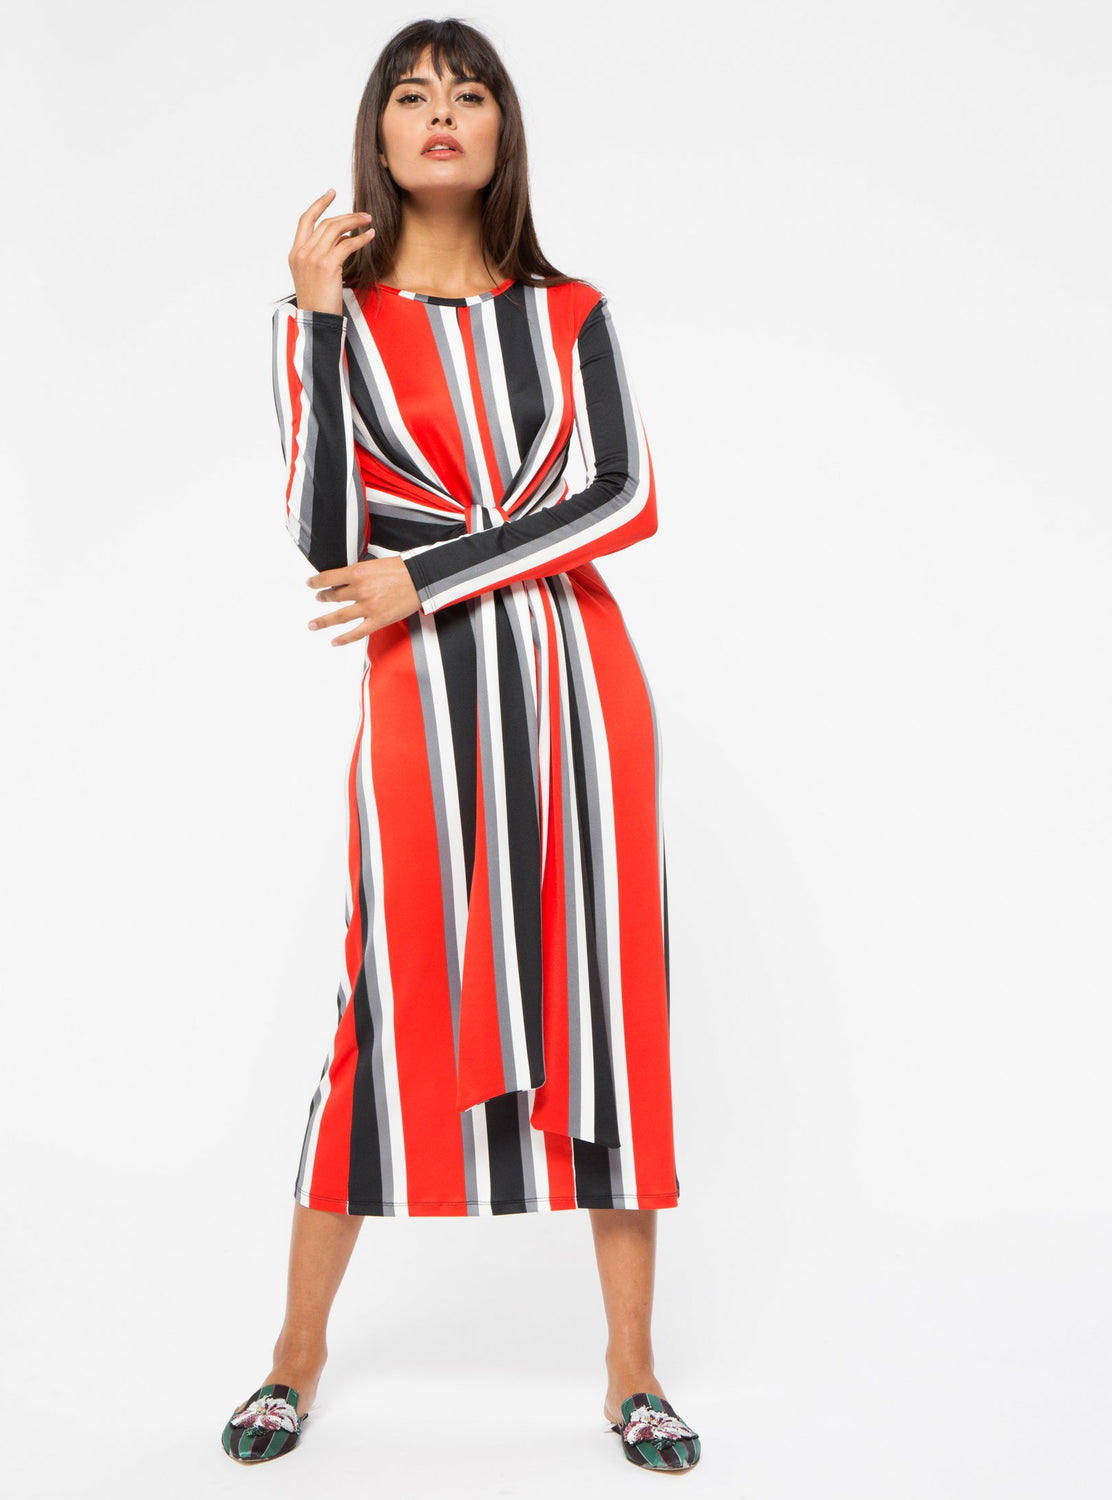 STORE WF Red Tie Front Stripe Midi Dress Modest Stripe Midi Dress with Long Sleeves and Tie Front